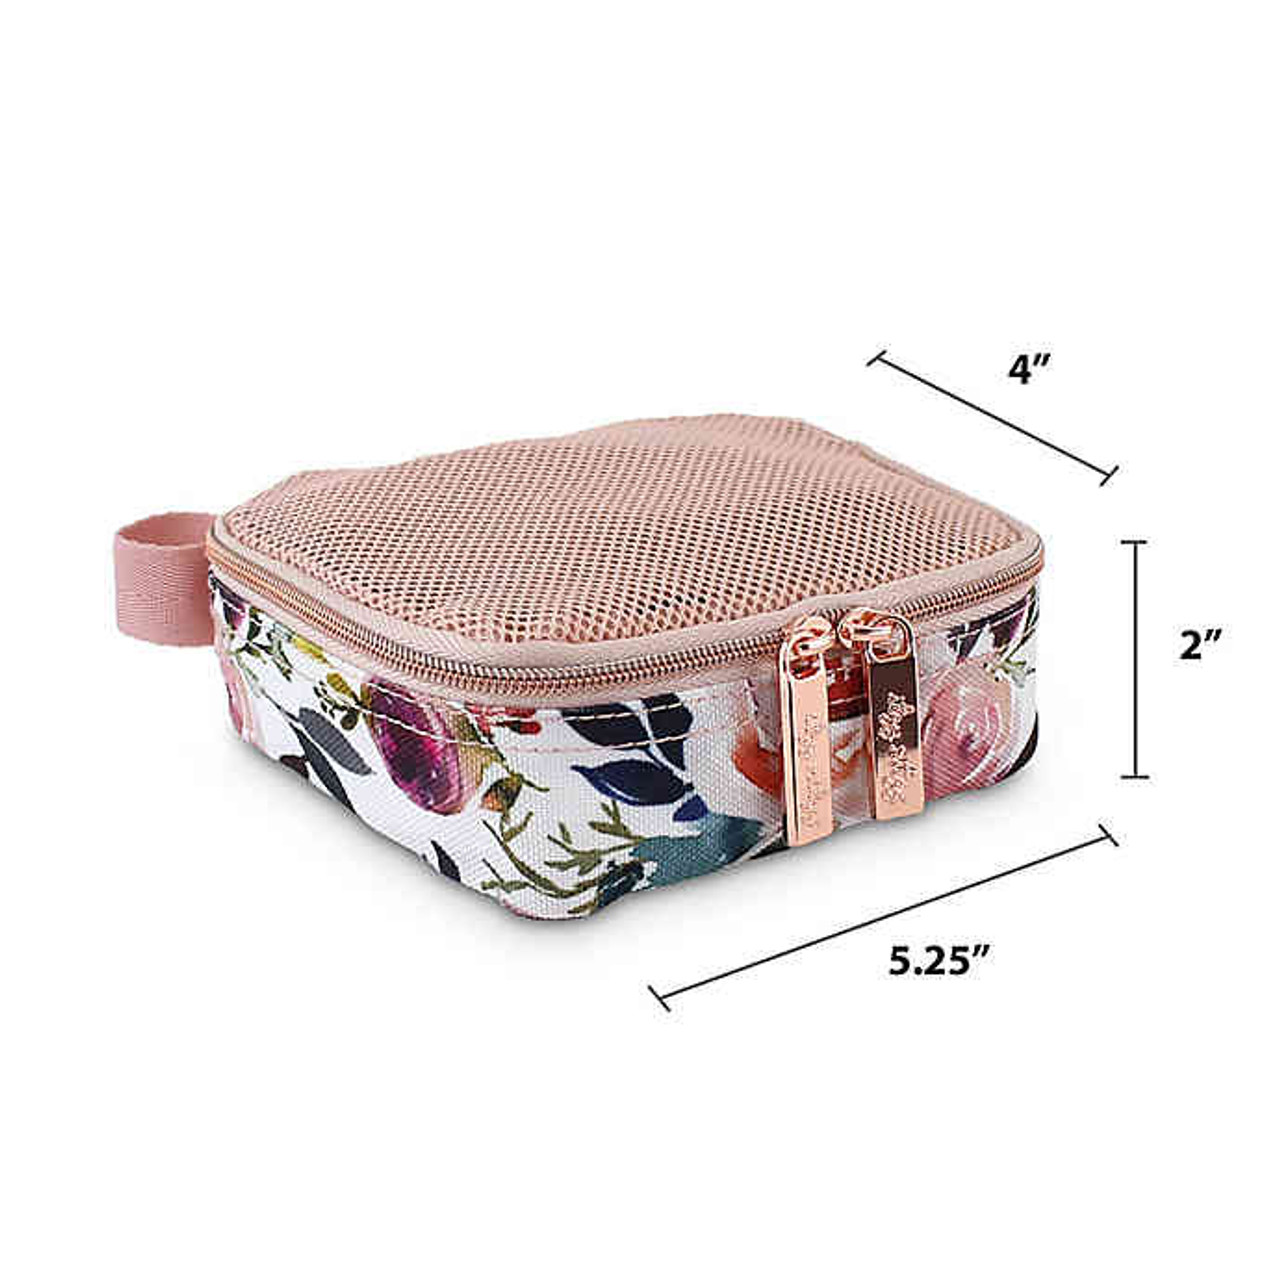 Blush Floral Packing Cubes by Itzy Ritzy